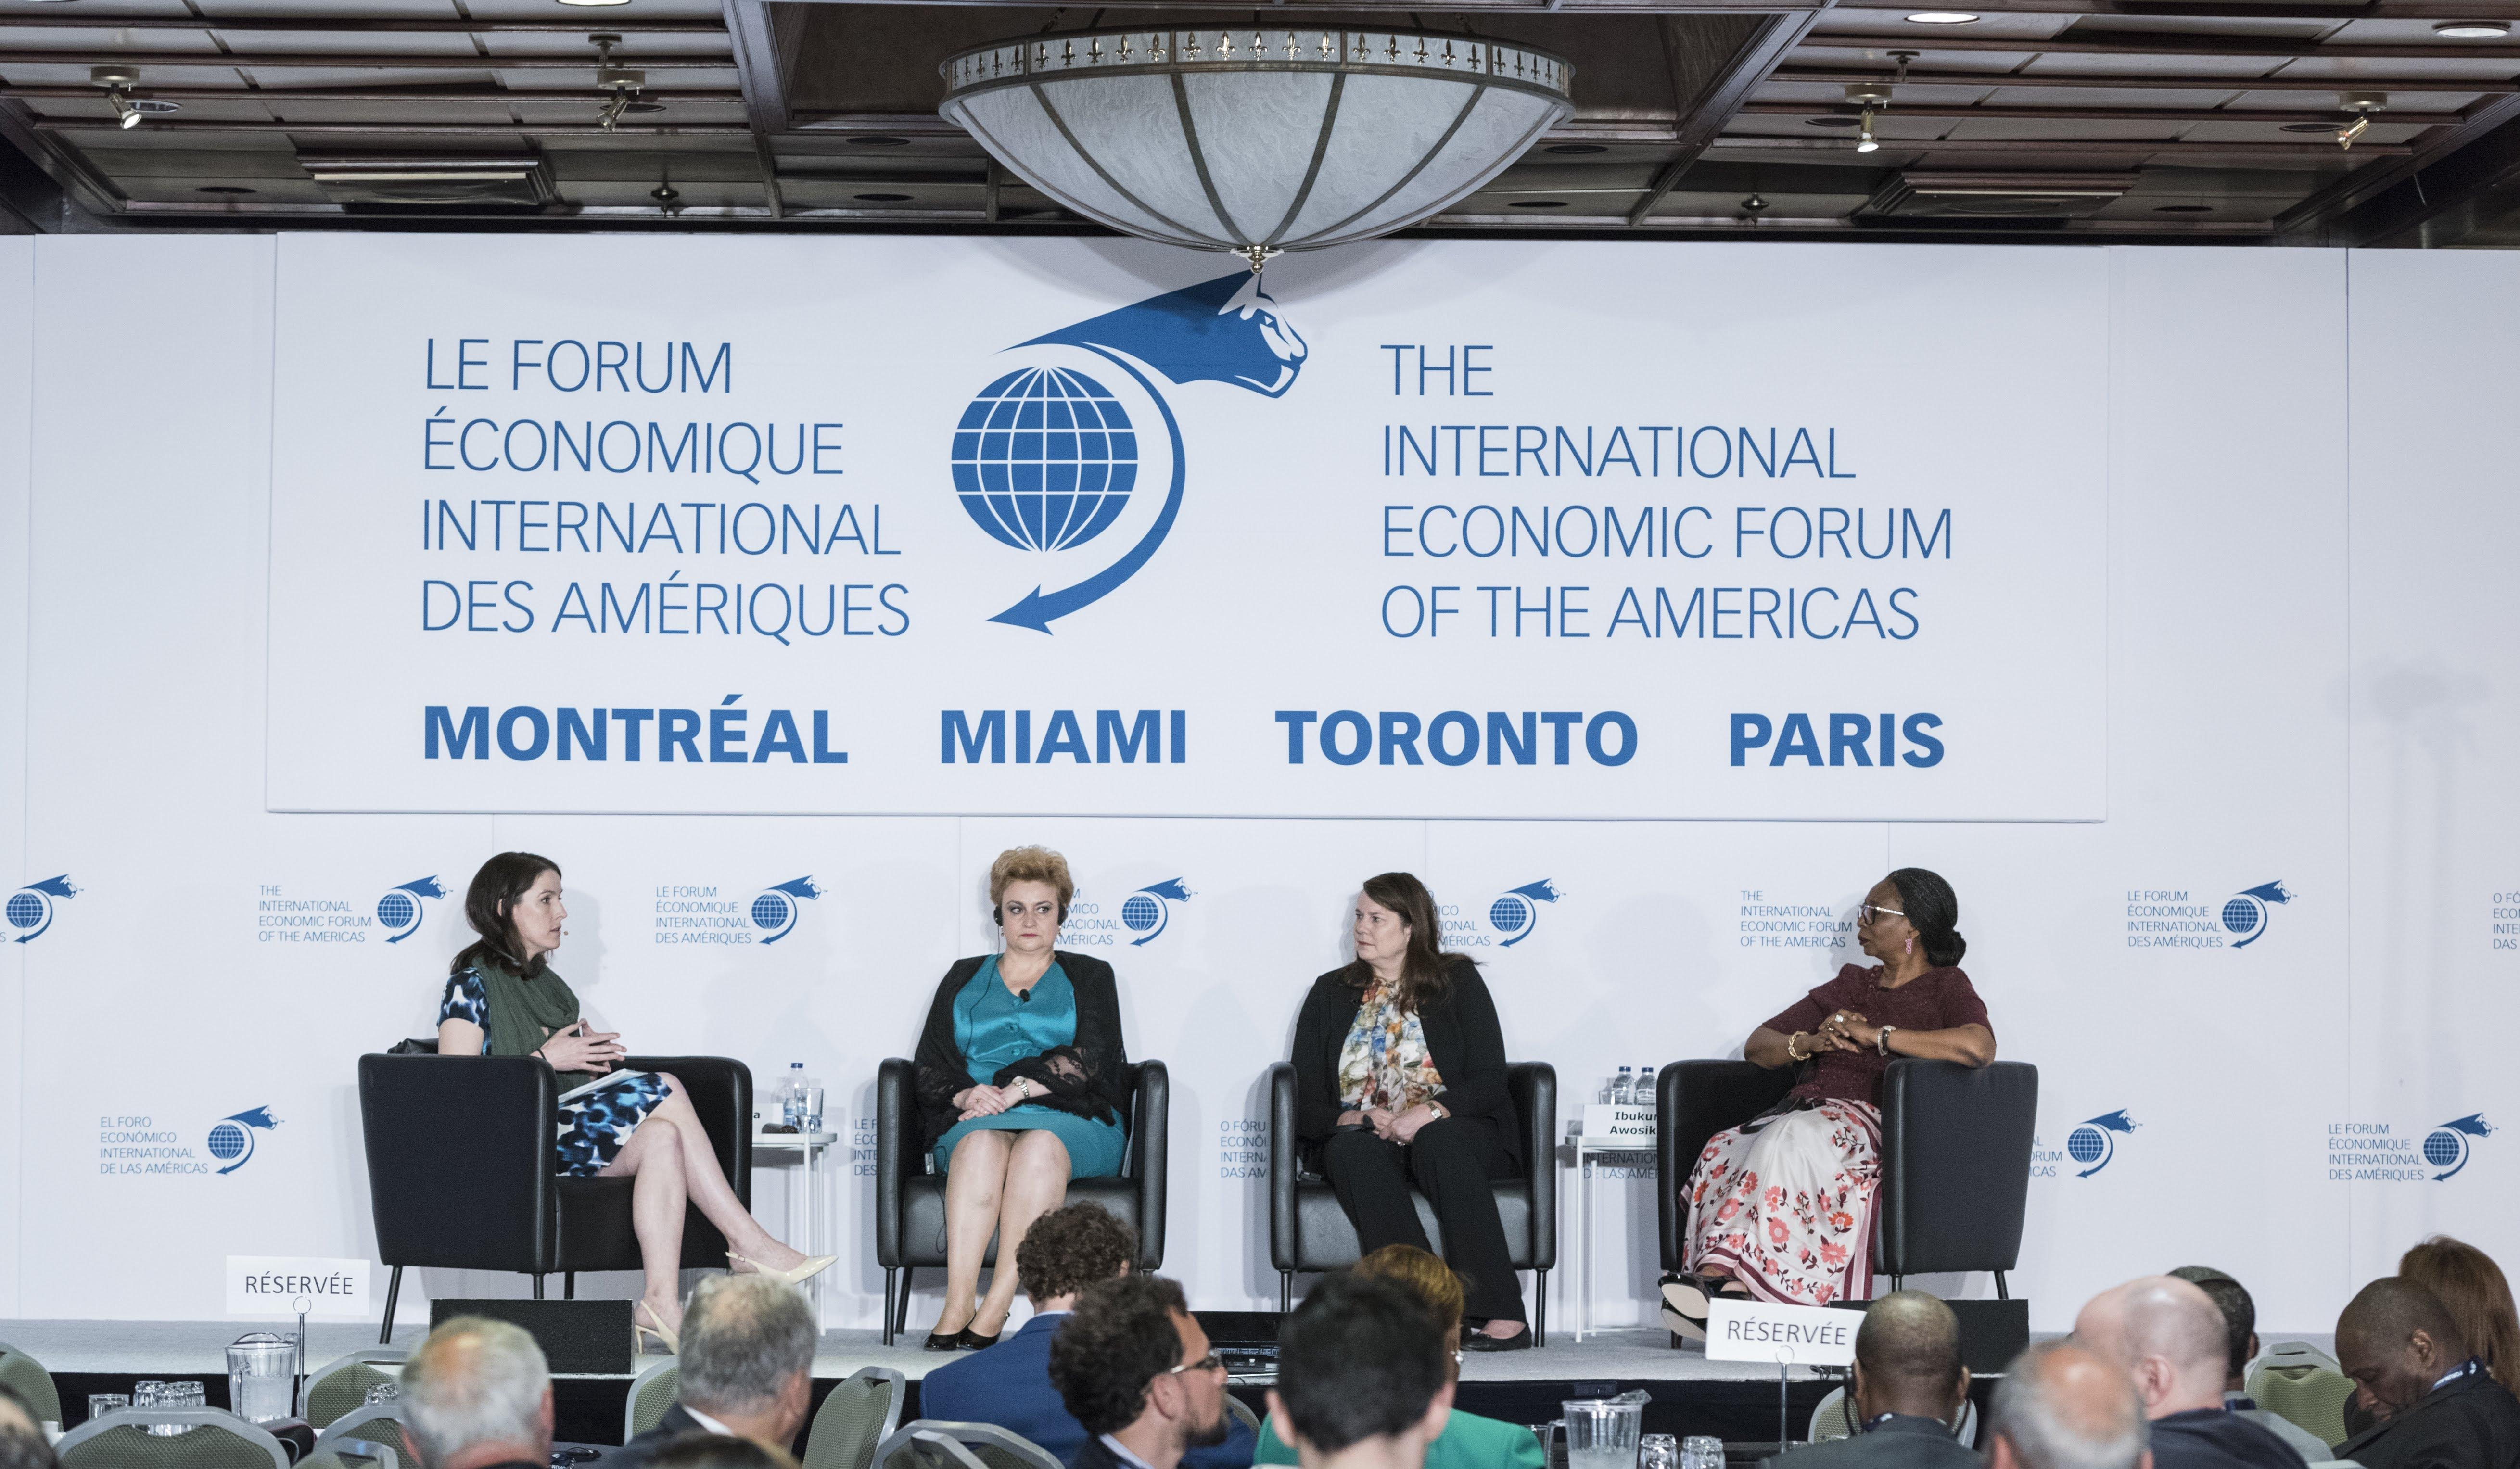 Graţiela Leocadia Gavrilescu, Vice-Prime Minister and Minister of Environment, Romania,  Ibukun Awosika, Chairman, First Bank of Nigeria amd Jane Buchan, CEO, PAAMCO- Conference of Montreal 2018